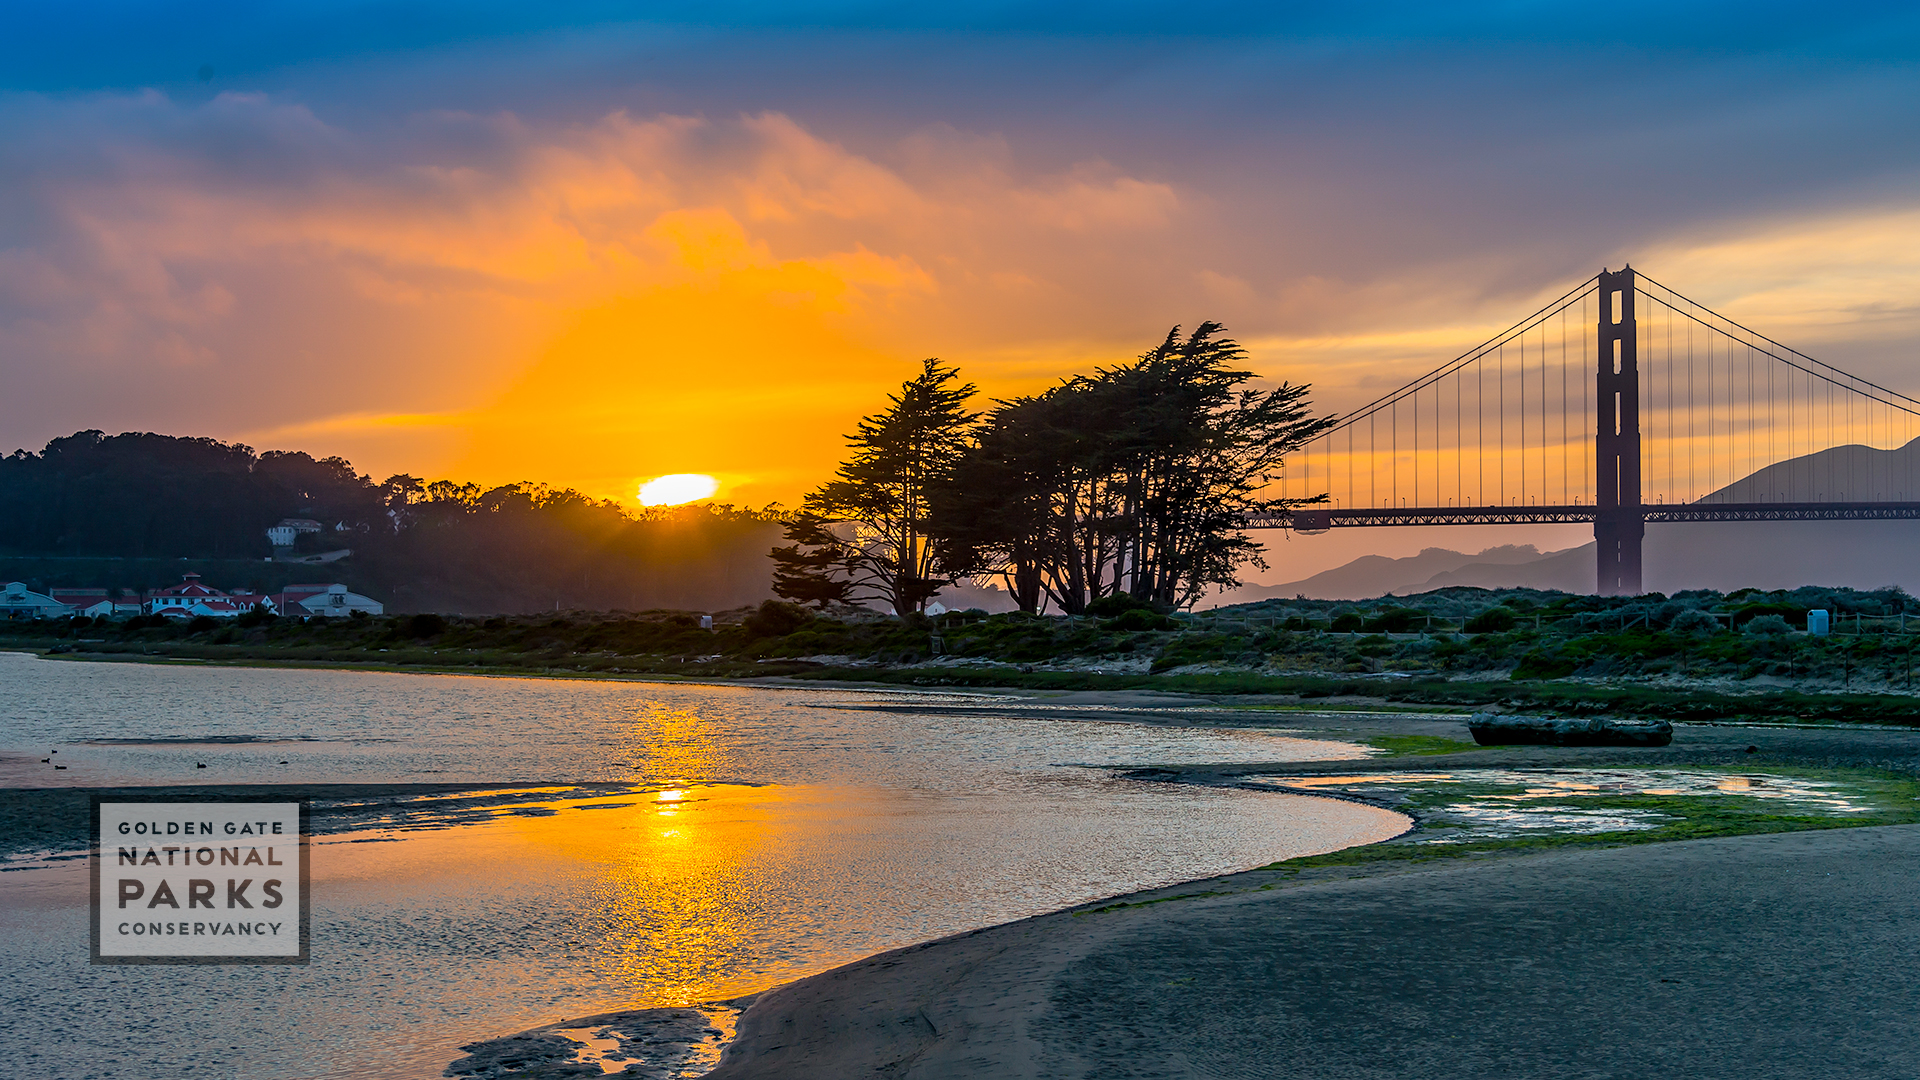 Free Zoom Backgrounds To Take Your Meetings To The Parks Golden Gate National Parks Conservancy